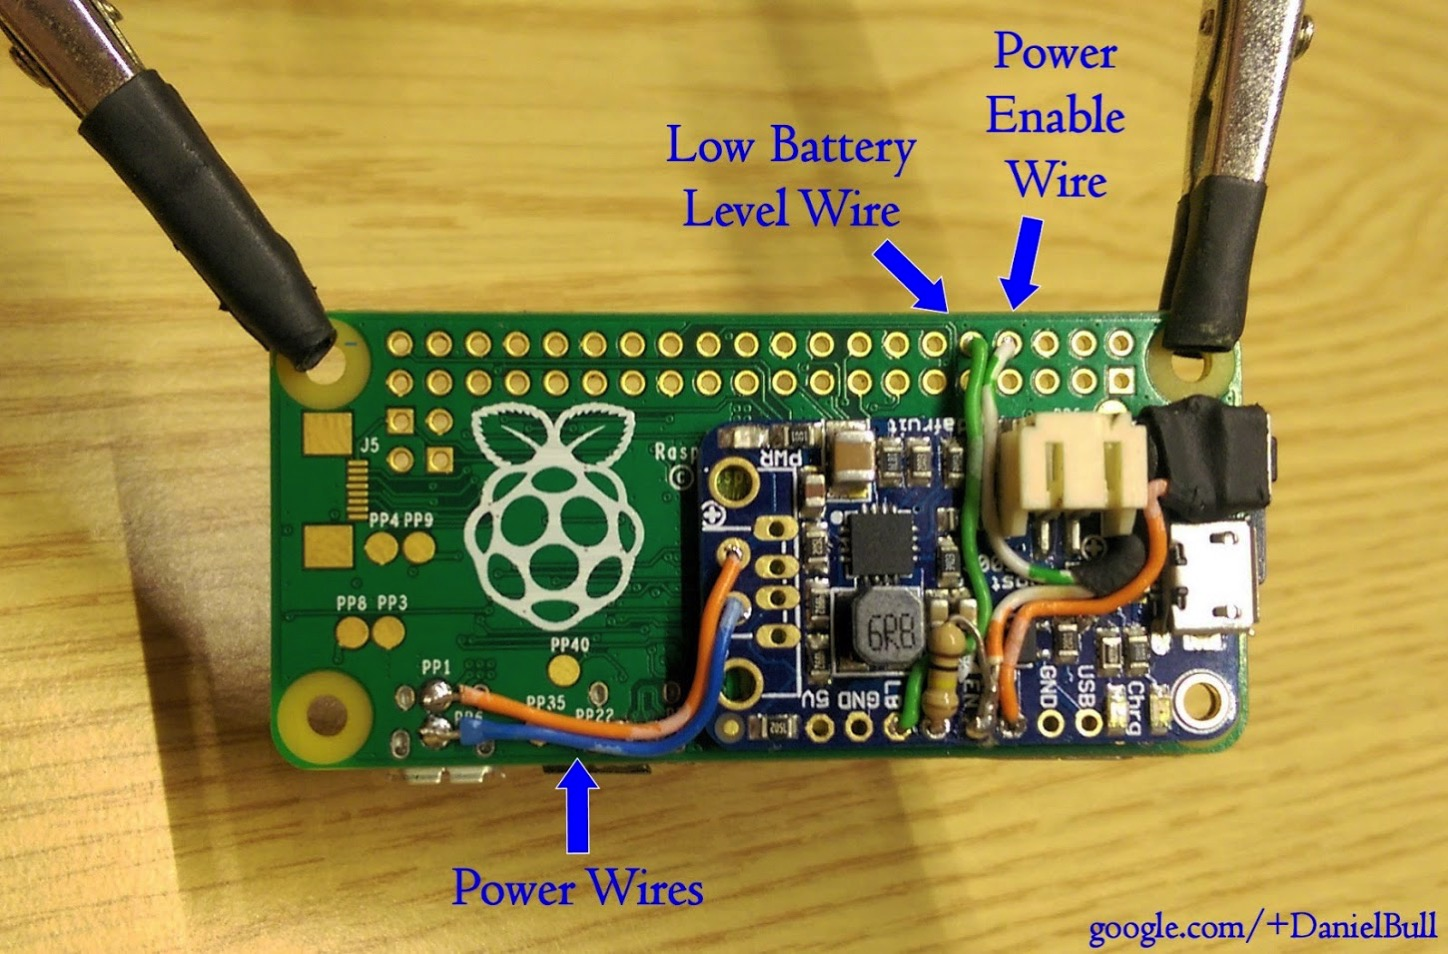 How To Run A Pi Zero And Other Pis From Lipo Including Low 10 Raspberry Led Wiring Diagram Battery Piday Raspberypi